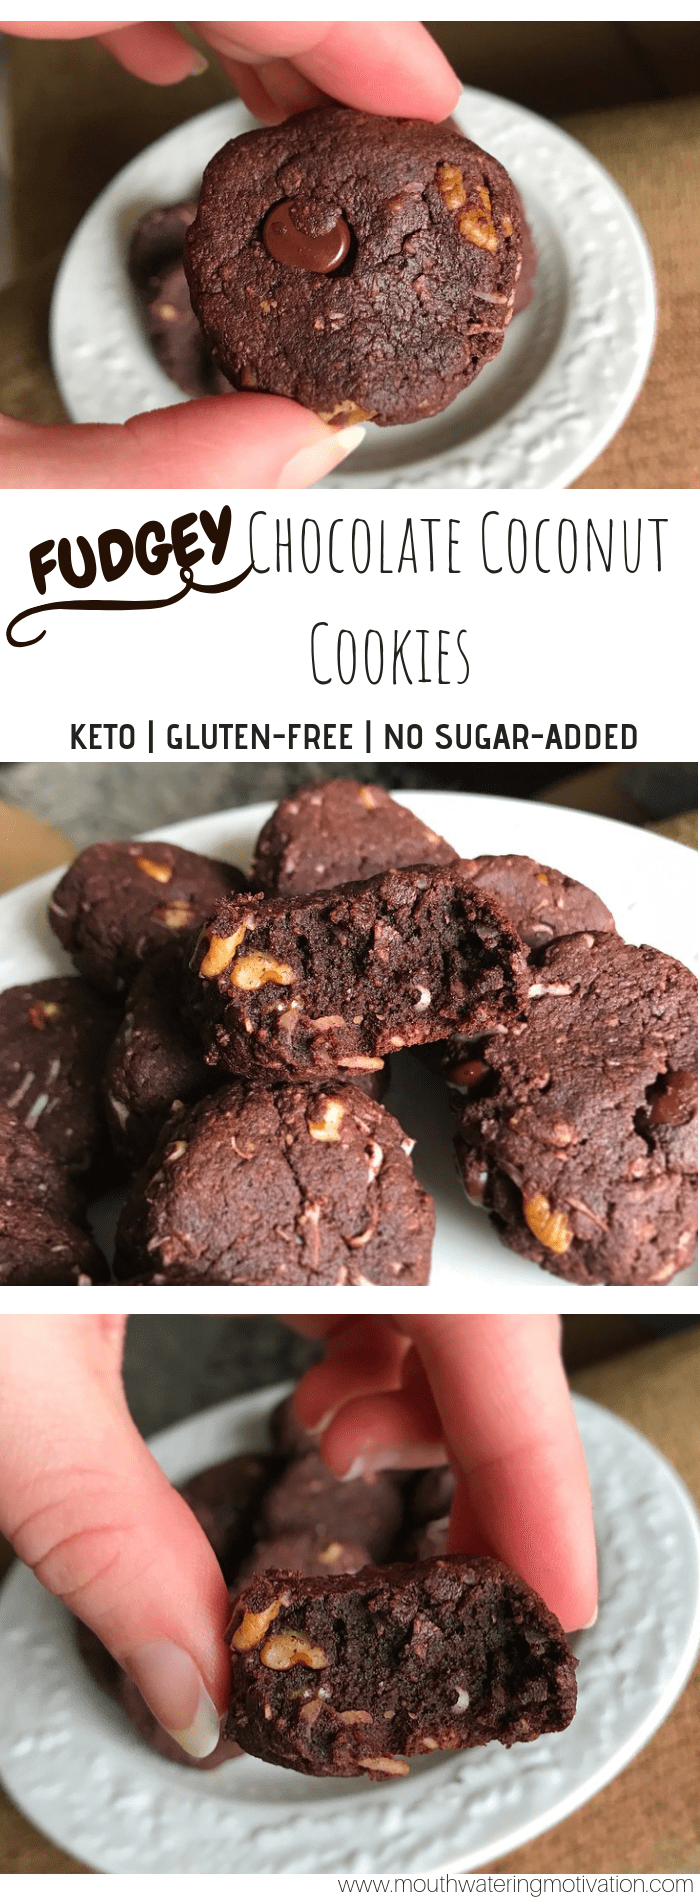 keto chocolate coconut cookies